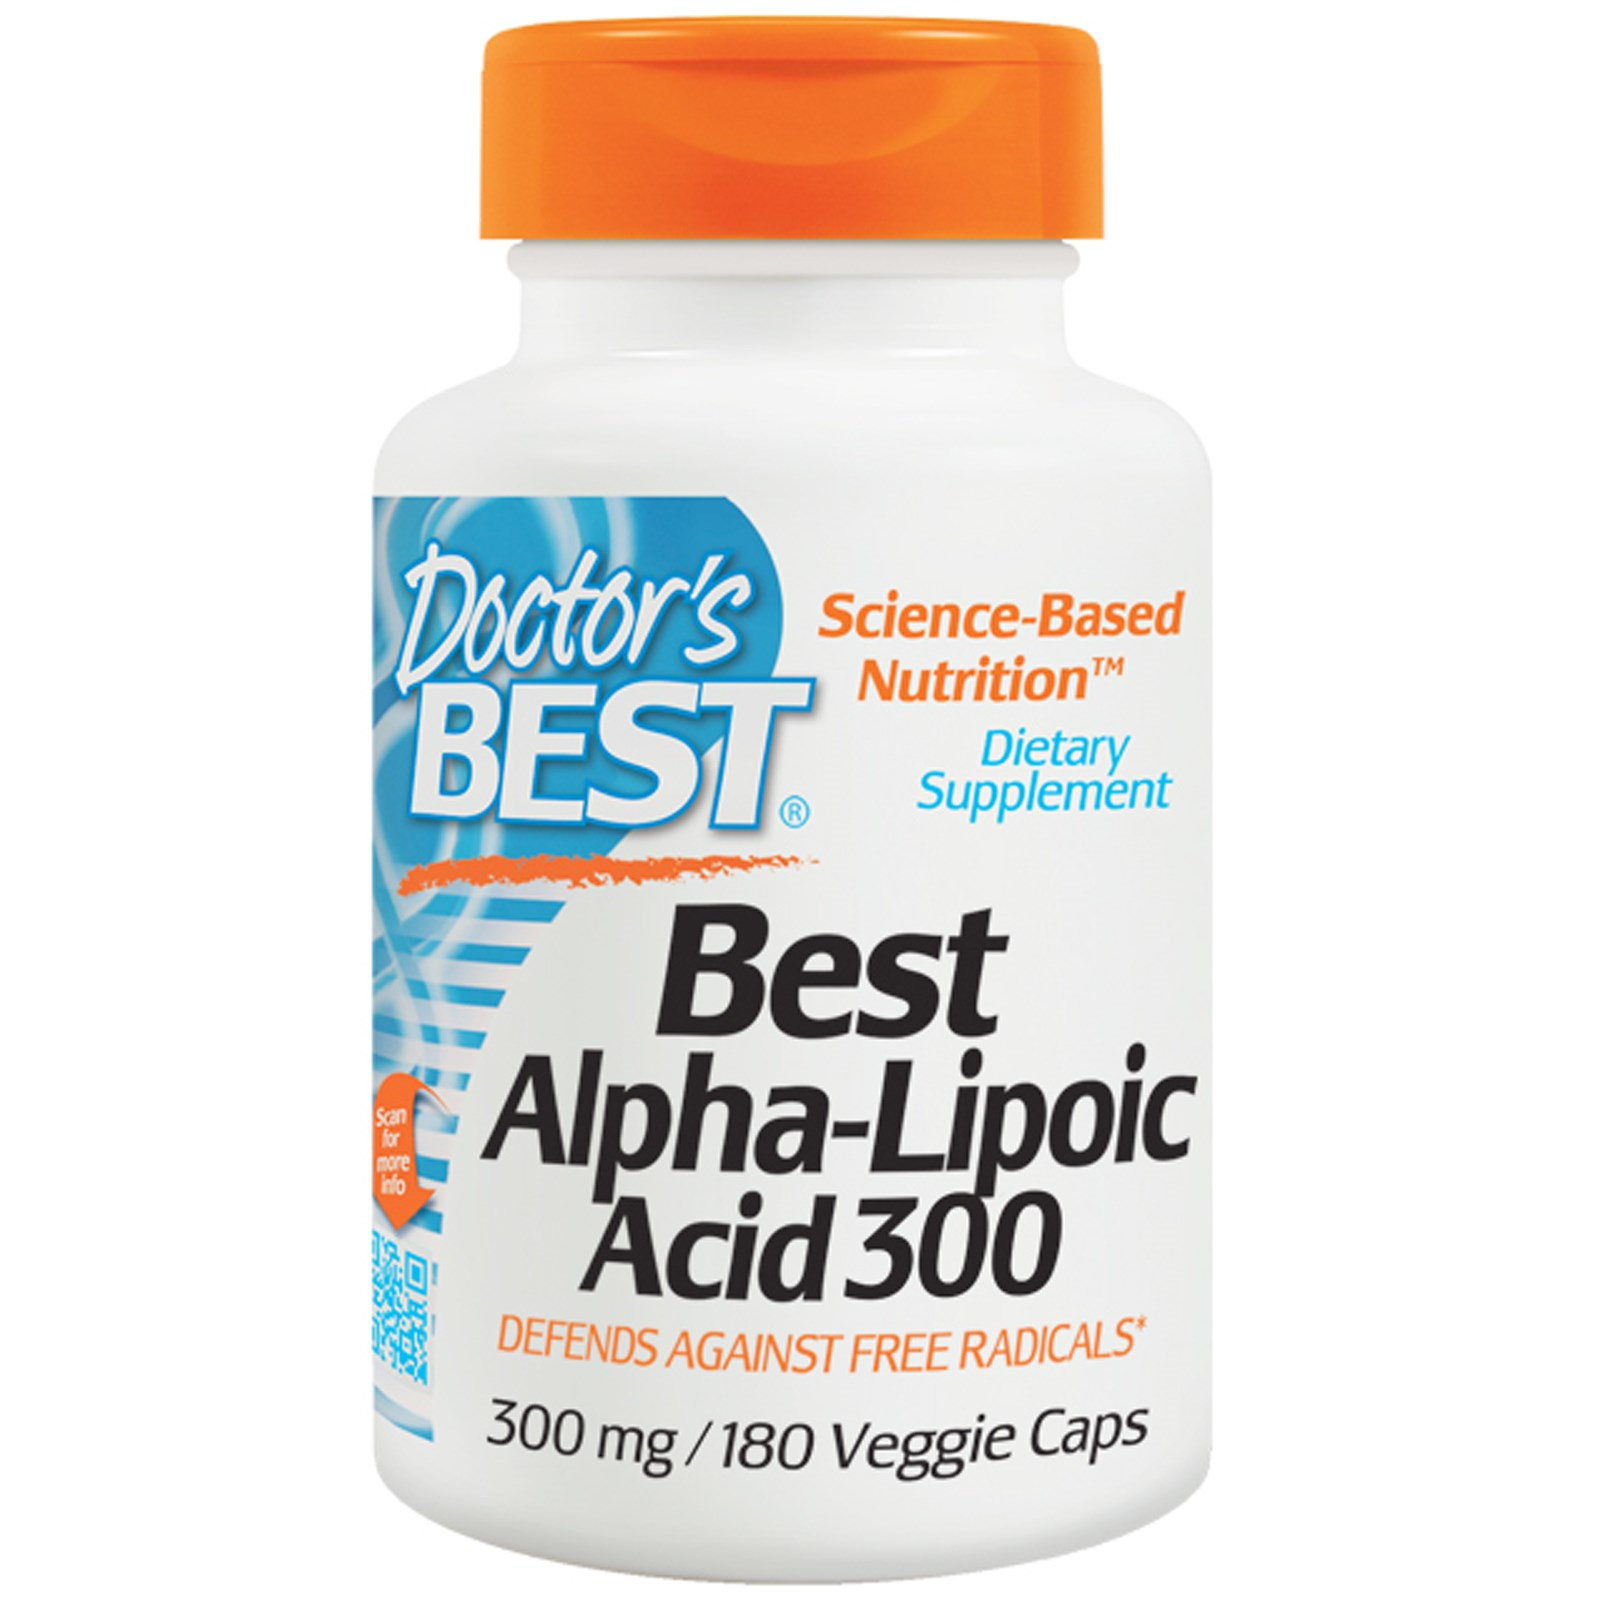 Doctor apos s Best, Best Alpha Lipoic Acid 300, 300 mg, 180 Veggie Caps